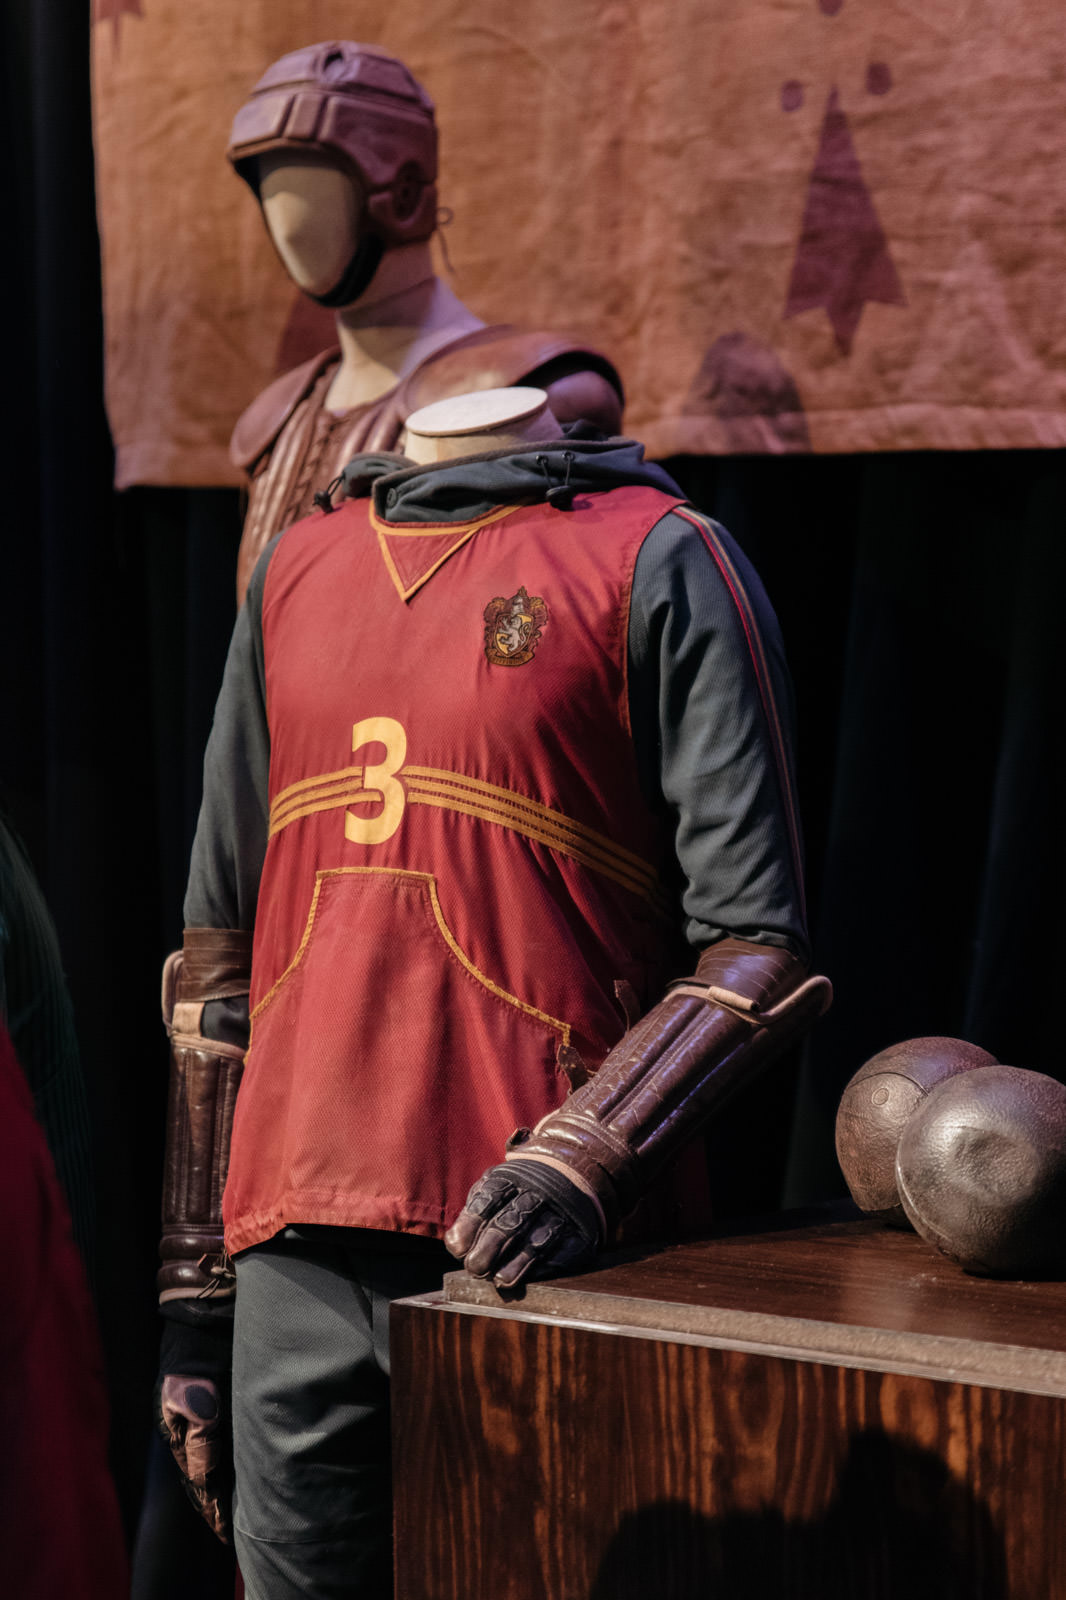 Blog-Mode-And-The-City-Lifestyle-Visite-Studios-Harry-Potter-Londres-17